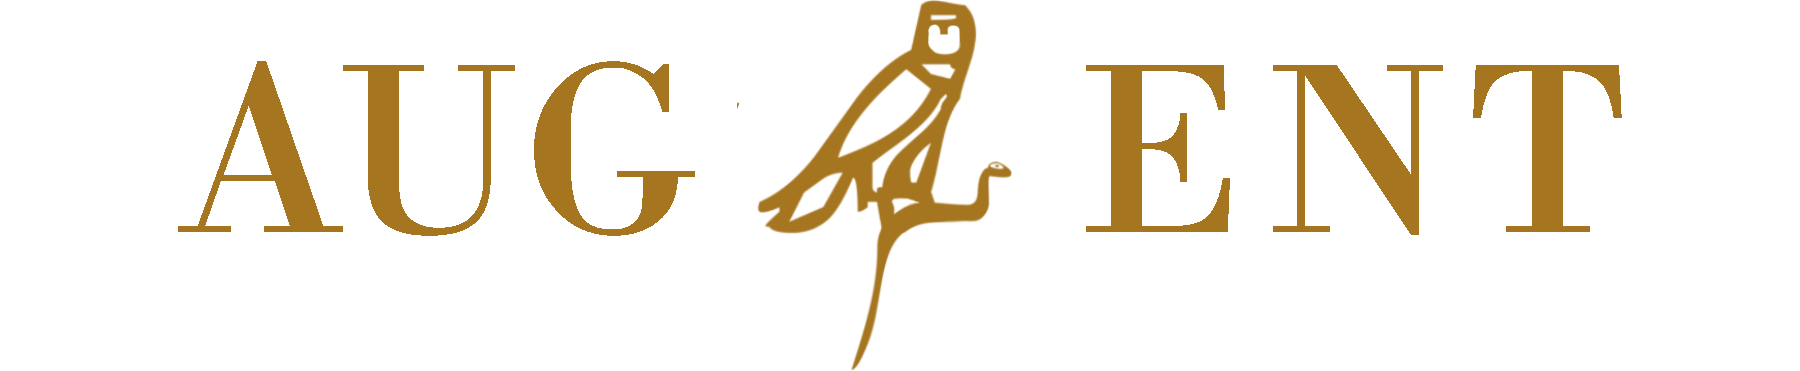 I started August Entertainment in August of 2016, and it was my first foray into the world of business, entertainment, and design. I came up with the bird-of-prey/snake design through a long process of self-discovery, and it wasn't until much later that I realized its significance. Ask me sometime.